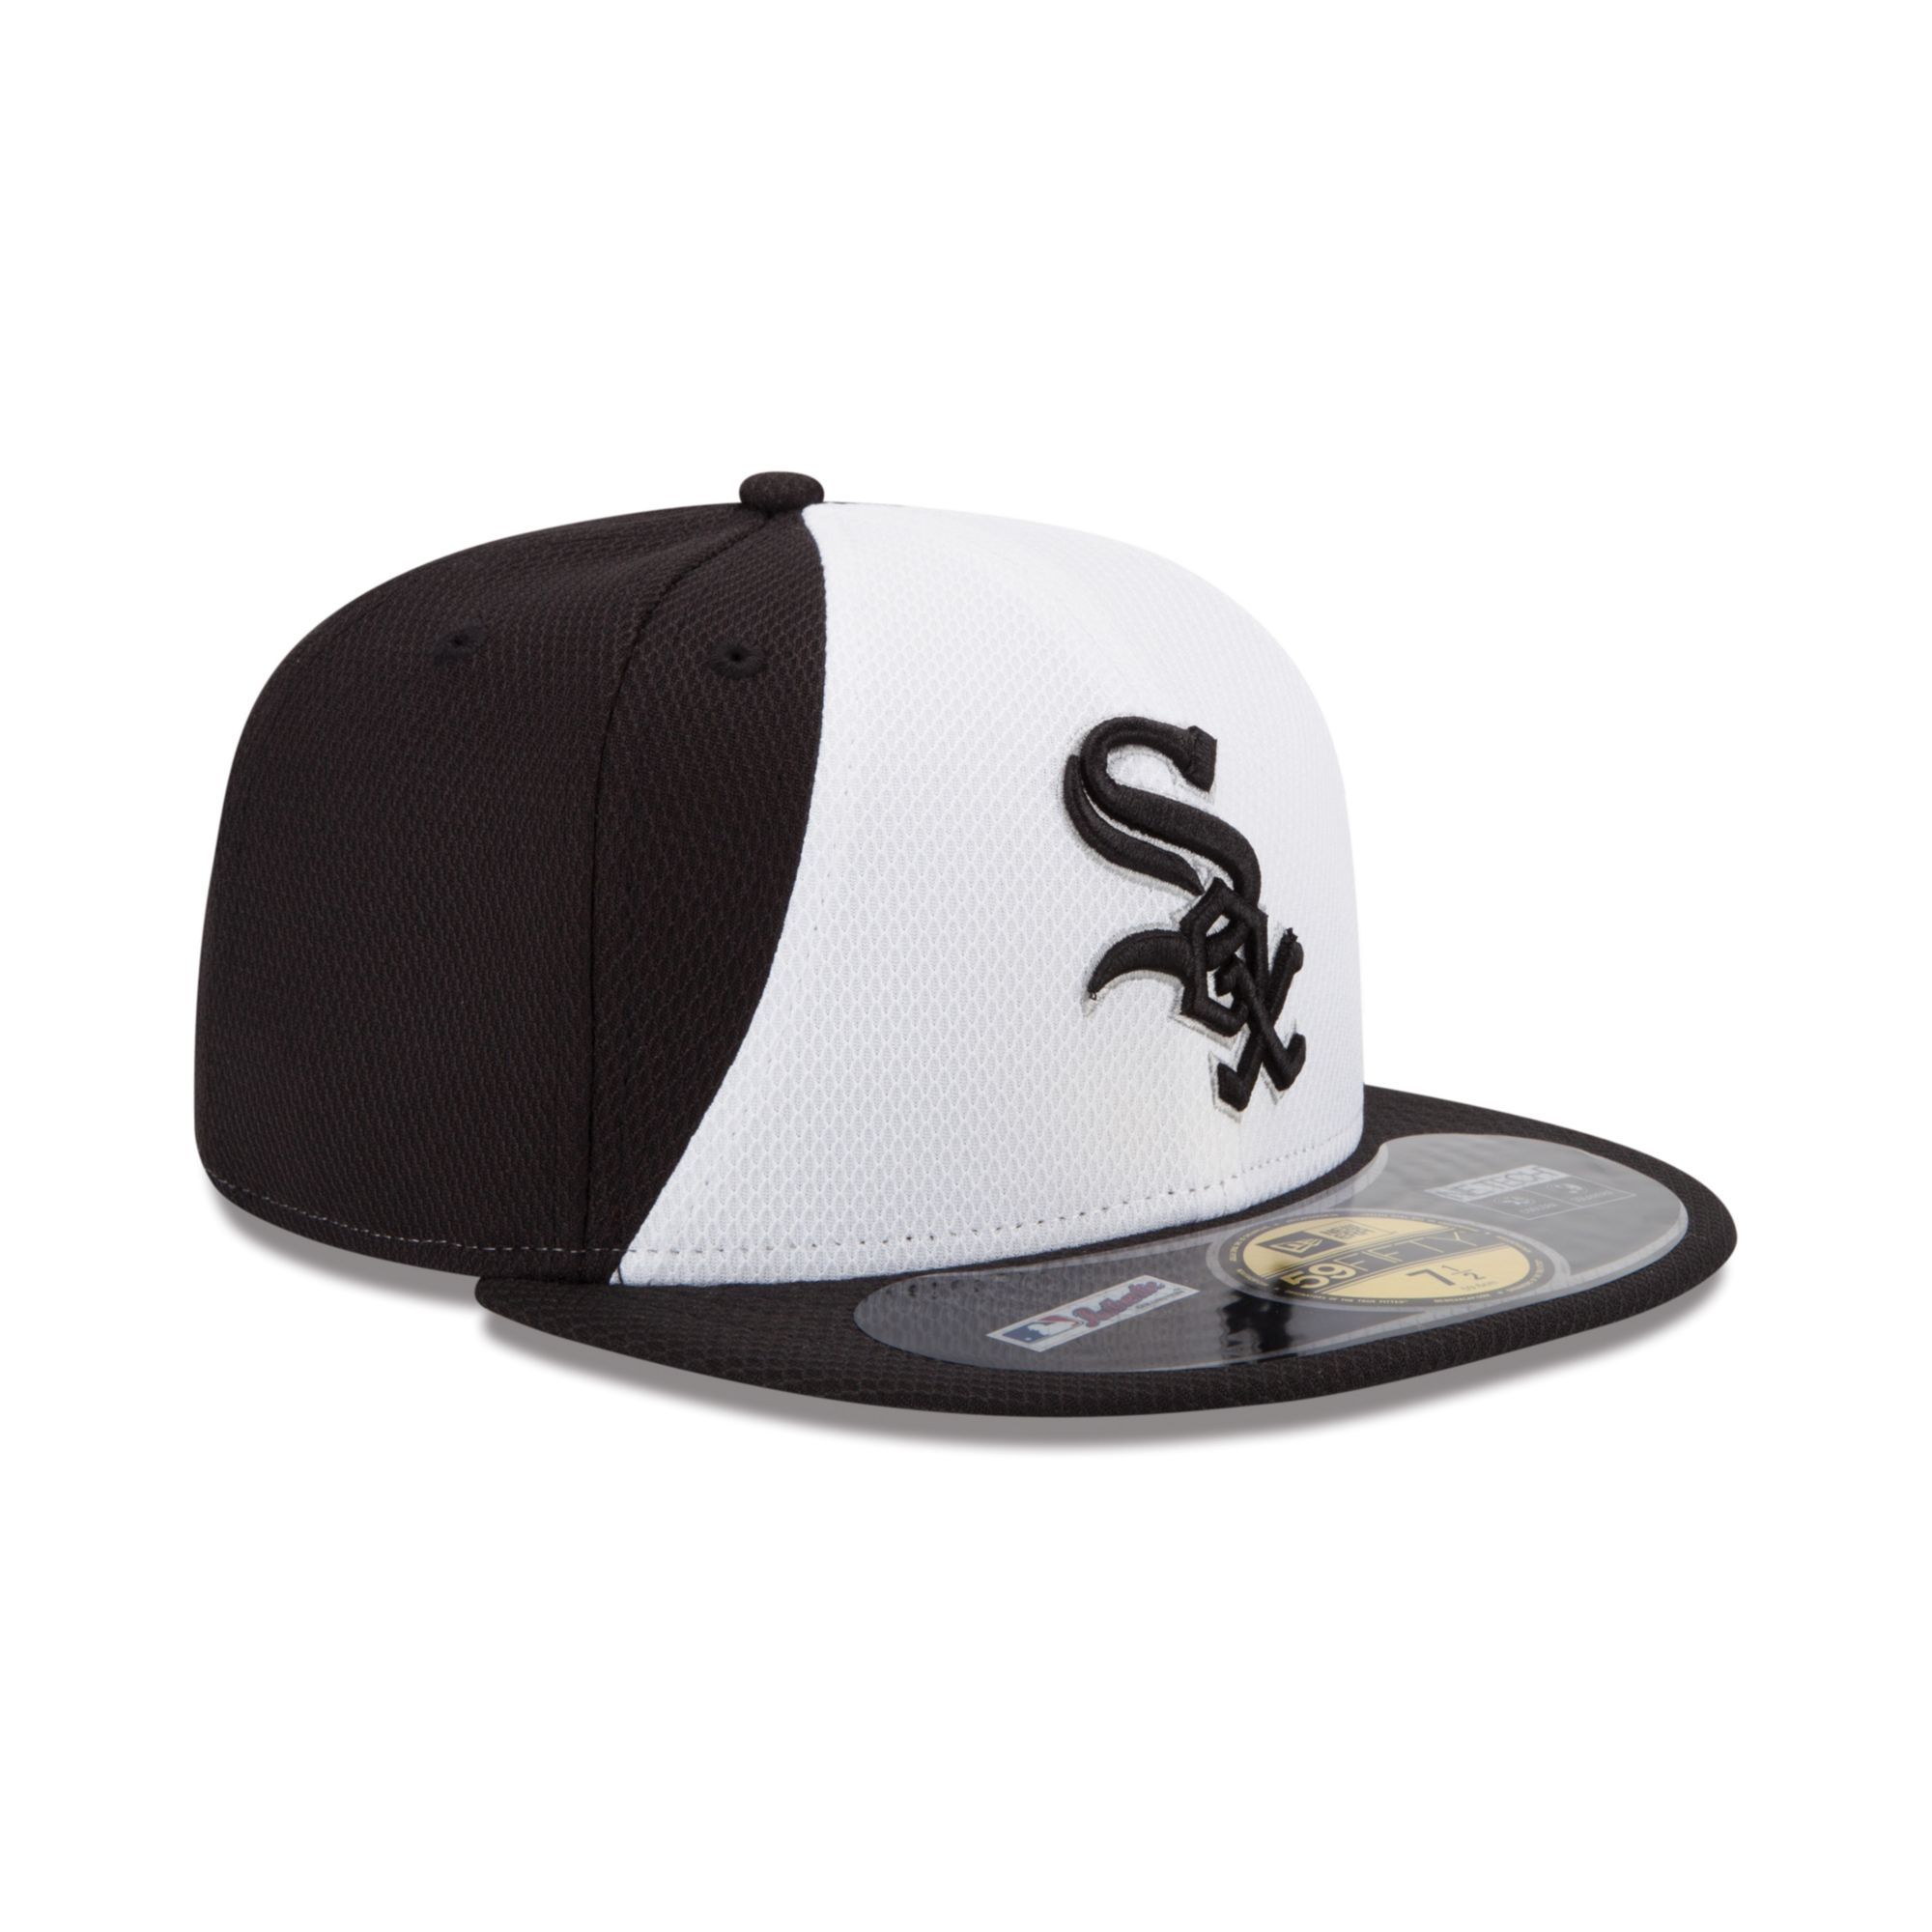 size 40 b8298 80c64 KTZ Chicago White Sox All Star Game Patch 59fifty Cap in Black for ...